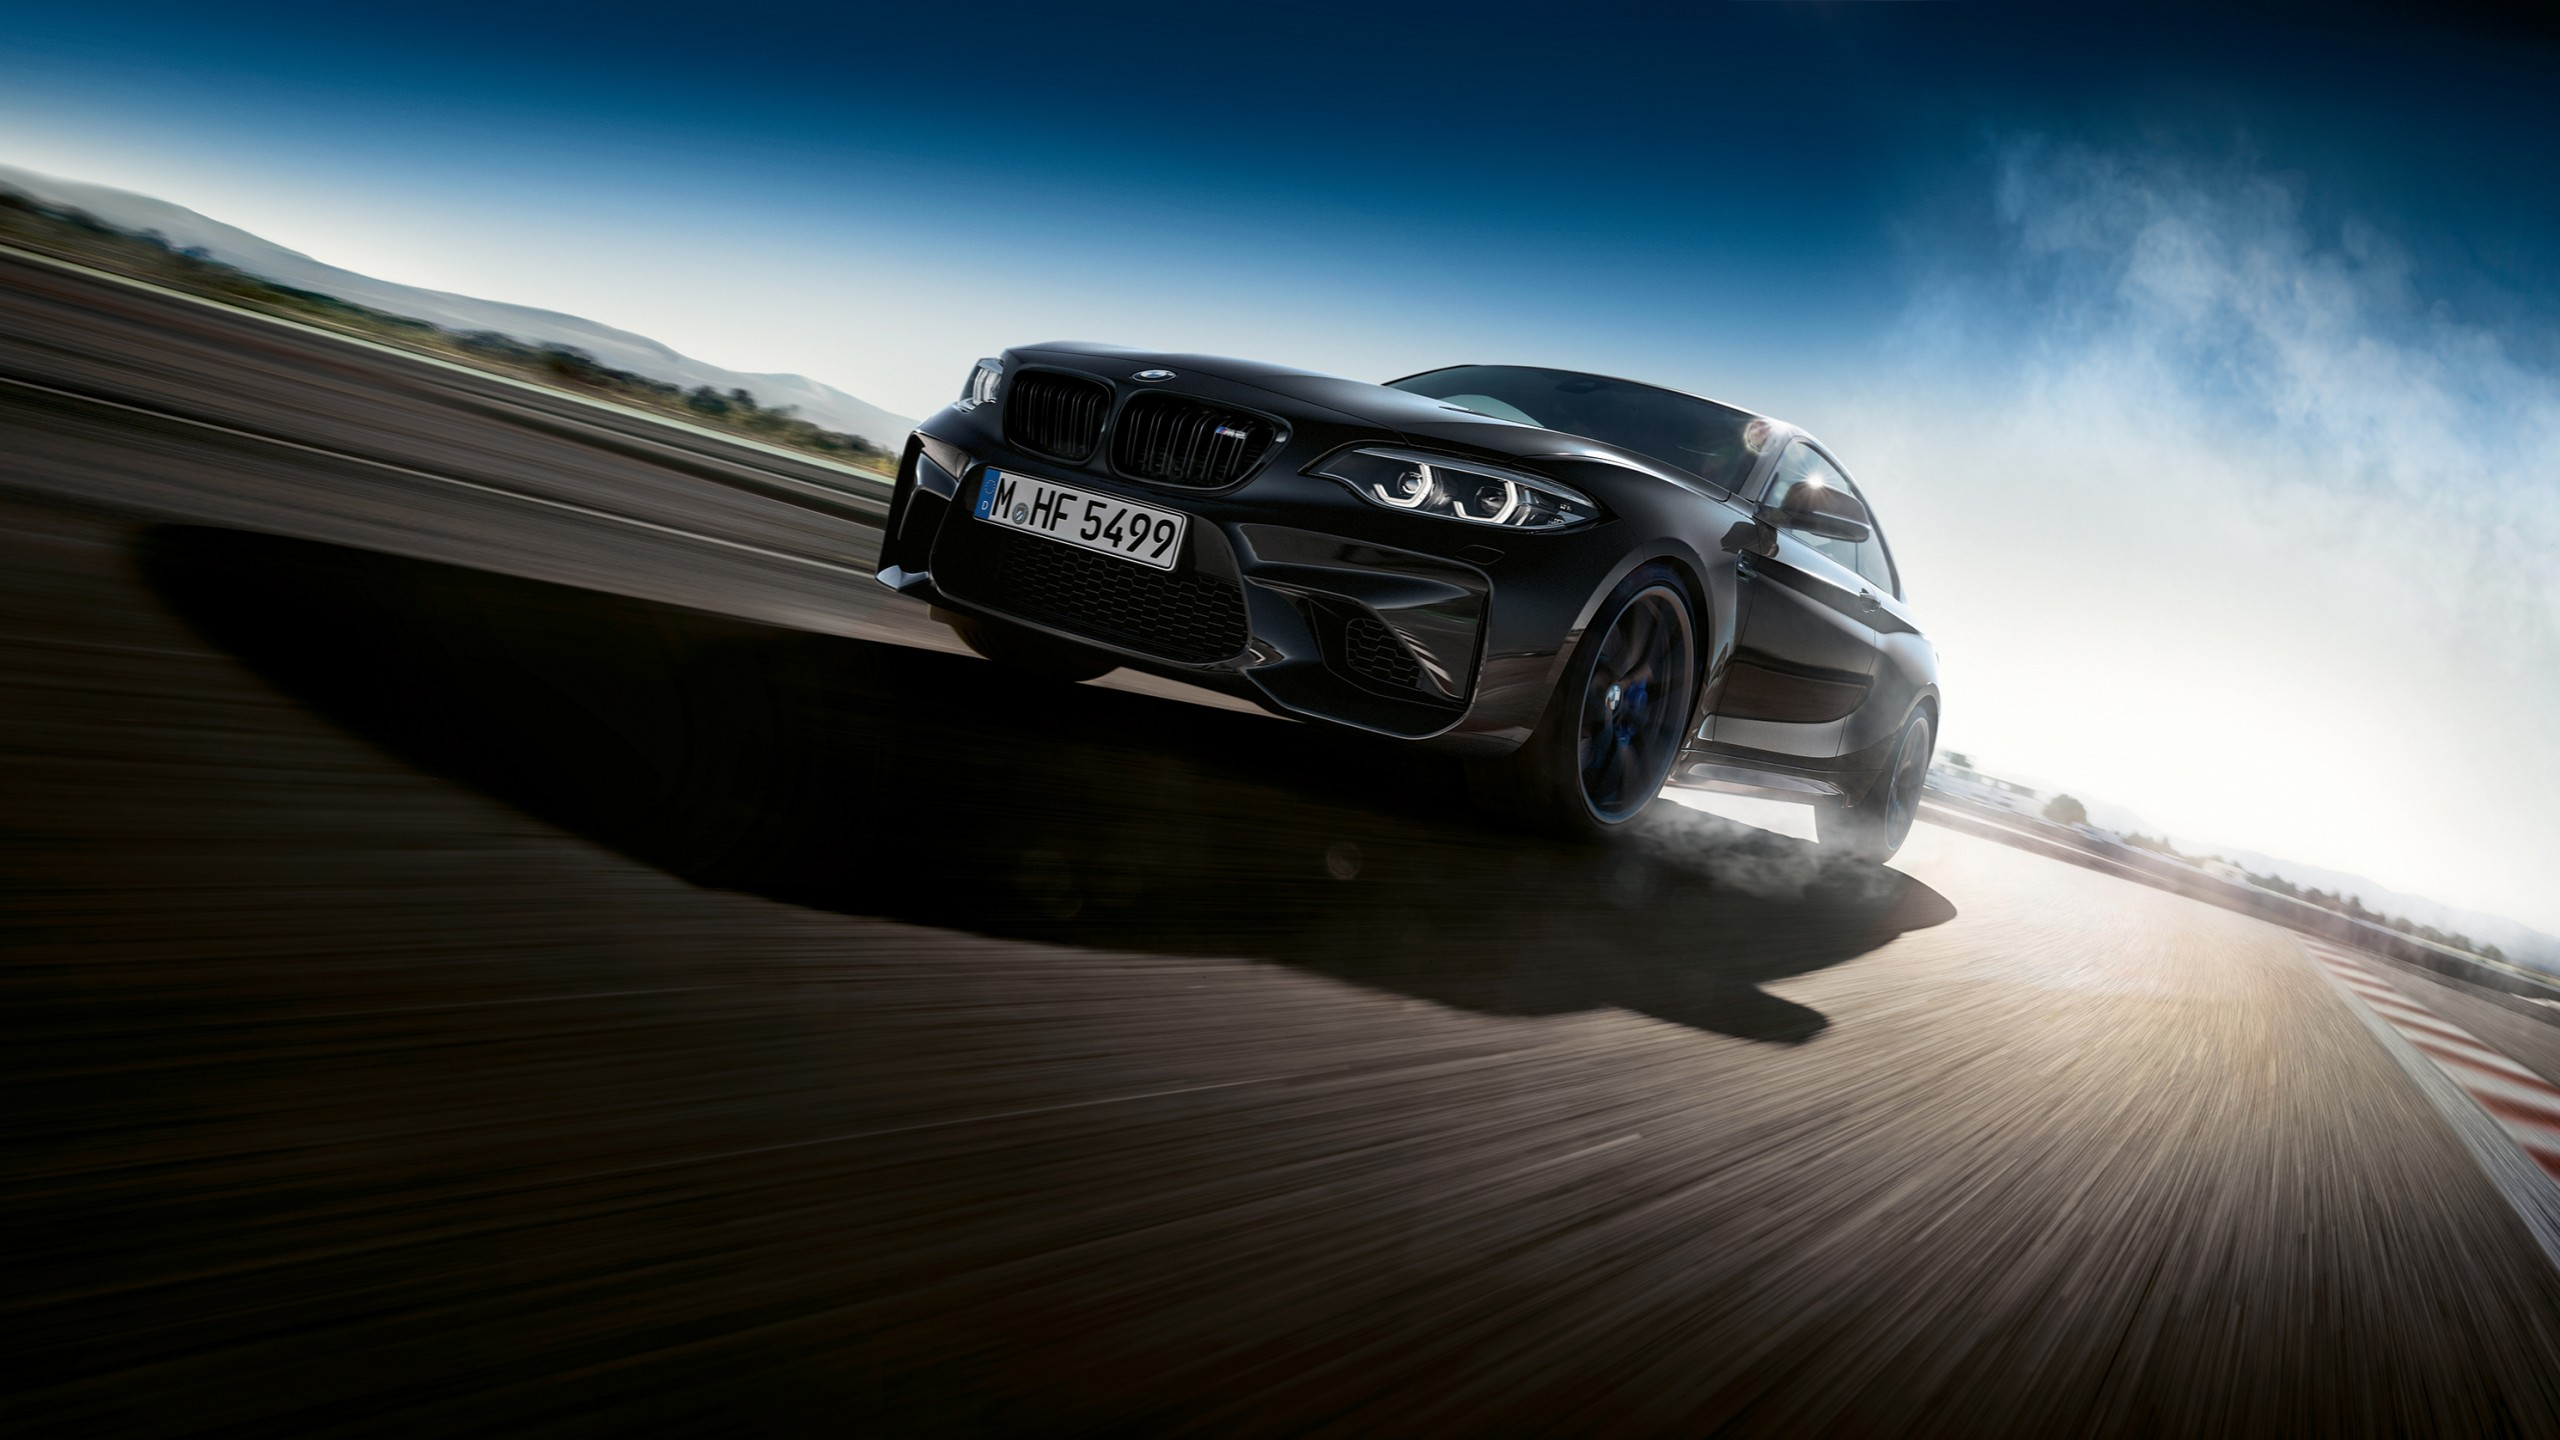 2018 Bmw M2 Coupe Edition Black Shadow Wallpaper Hd Car Wallpapers Id 9914